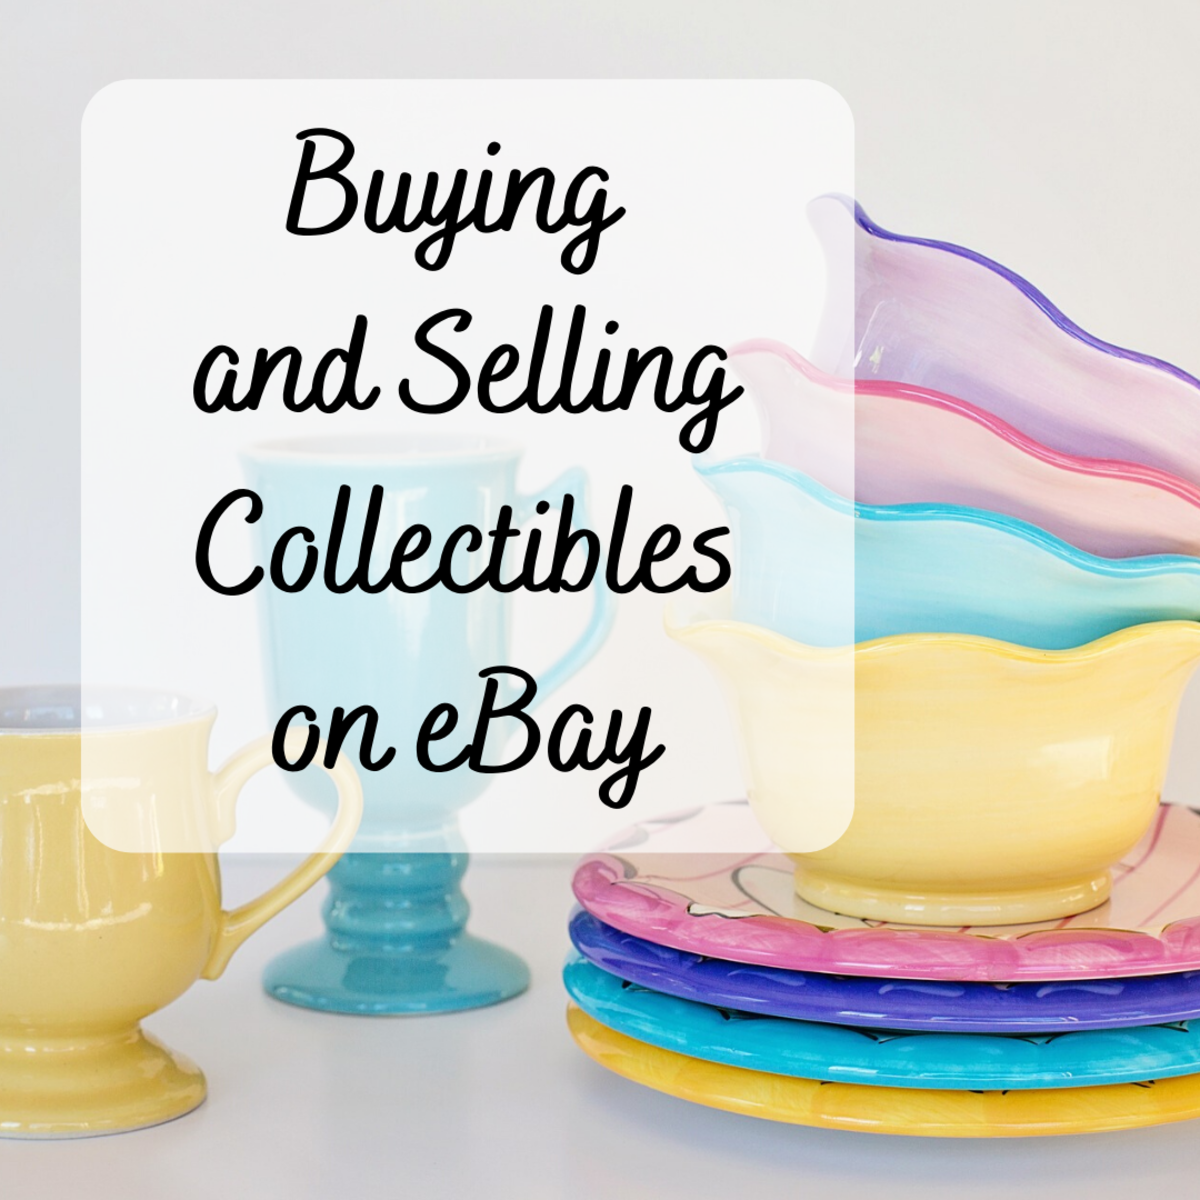 Discover some top tips for buying and selling collectibles on eBay, such as where to find items and what sells the best.